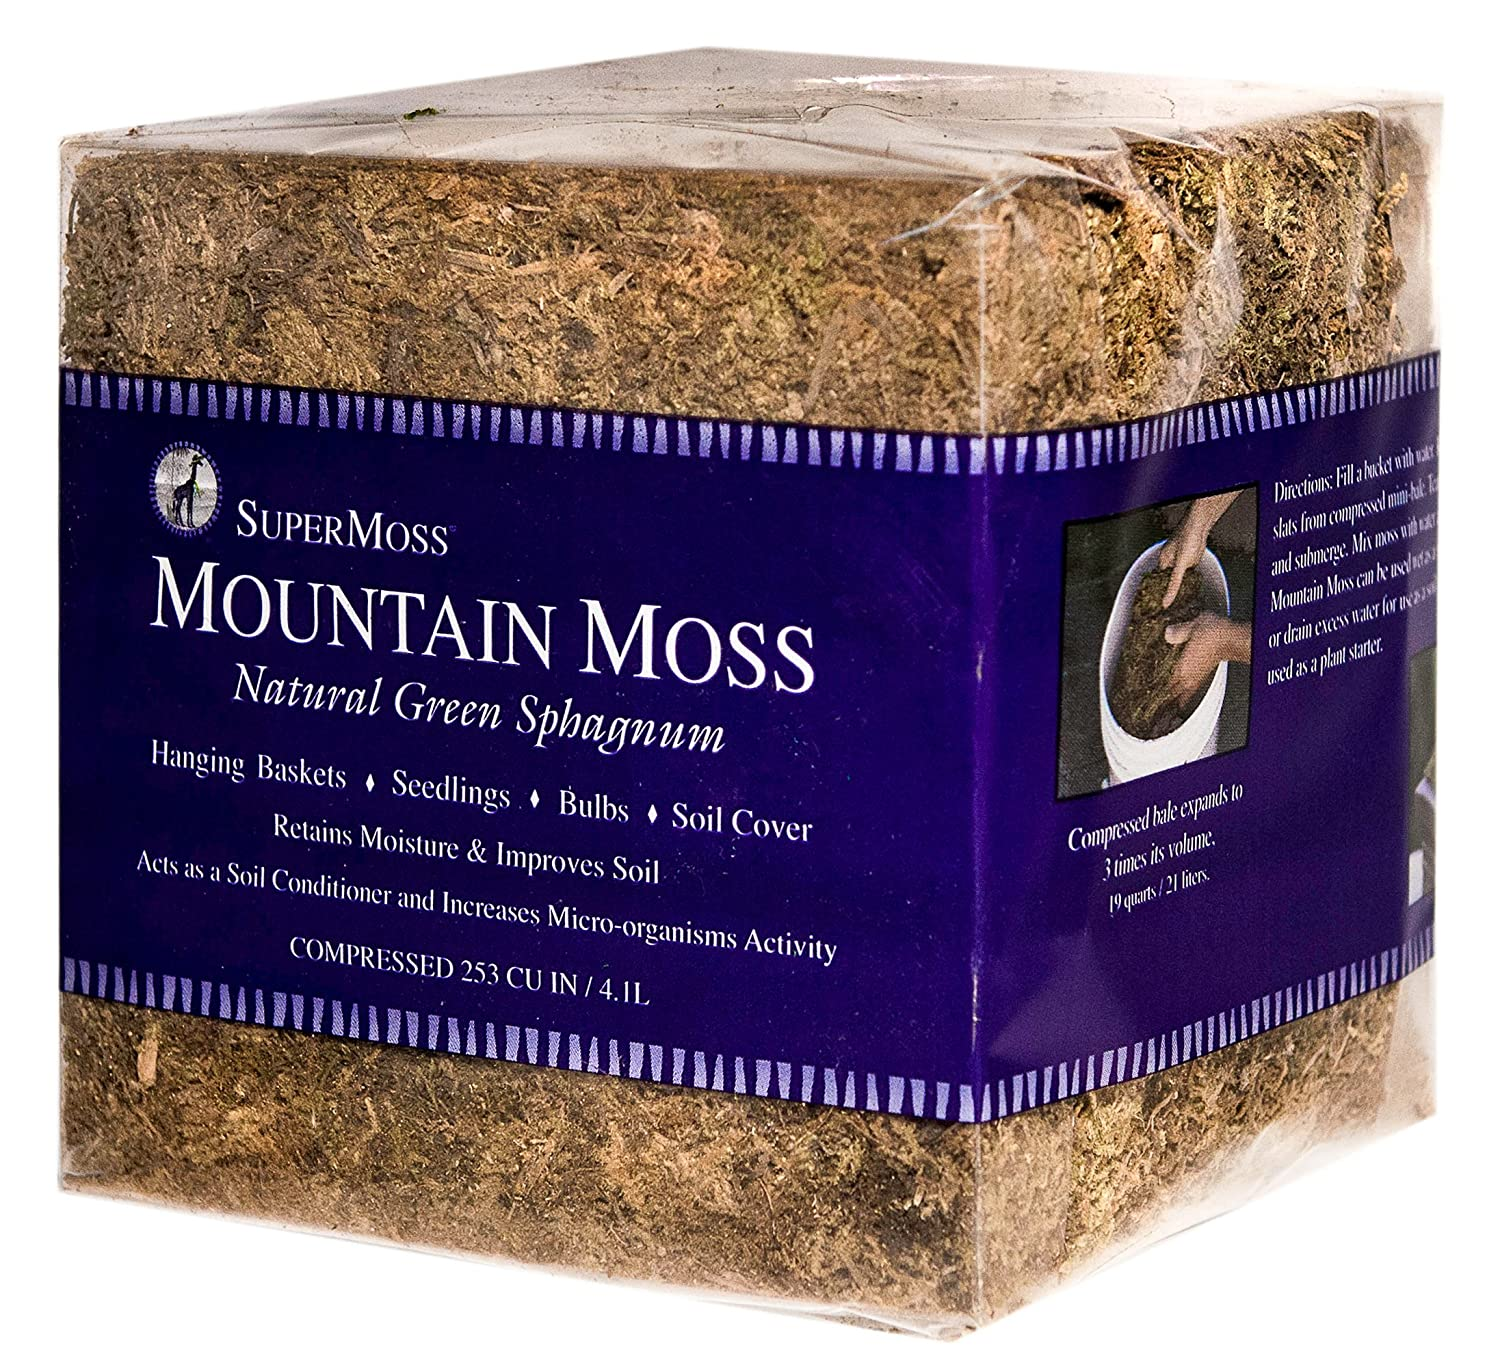 Supermosss Mountin Moss Fine Dried Green Sphagnum Mini Bale Super Moss 23820